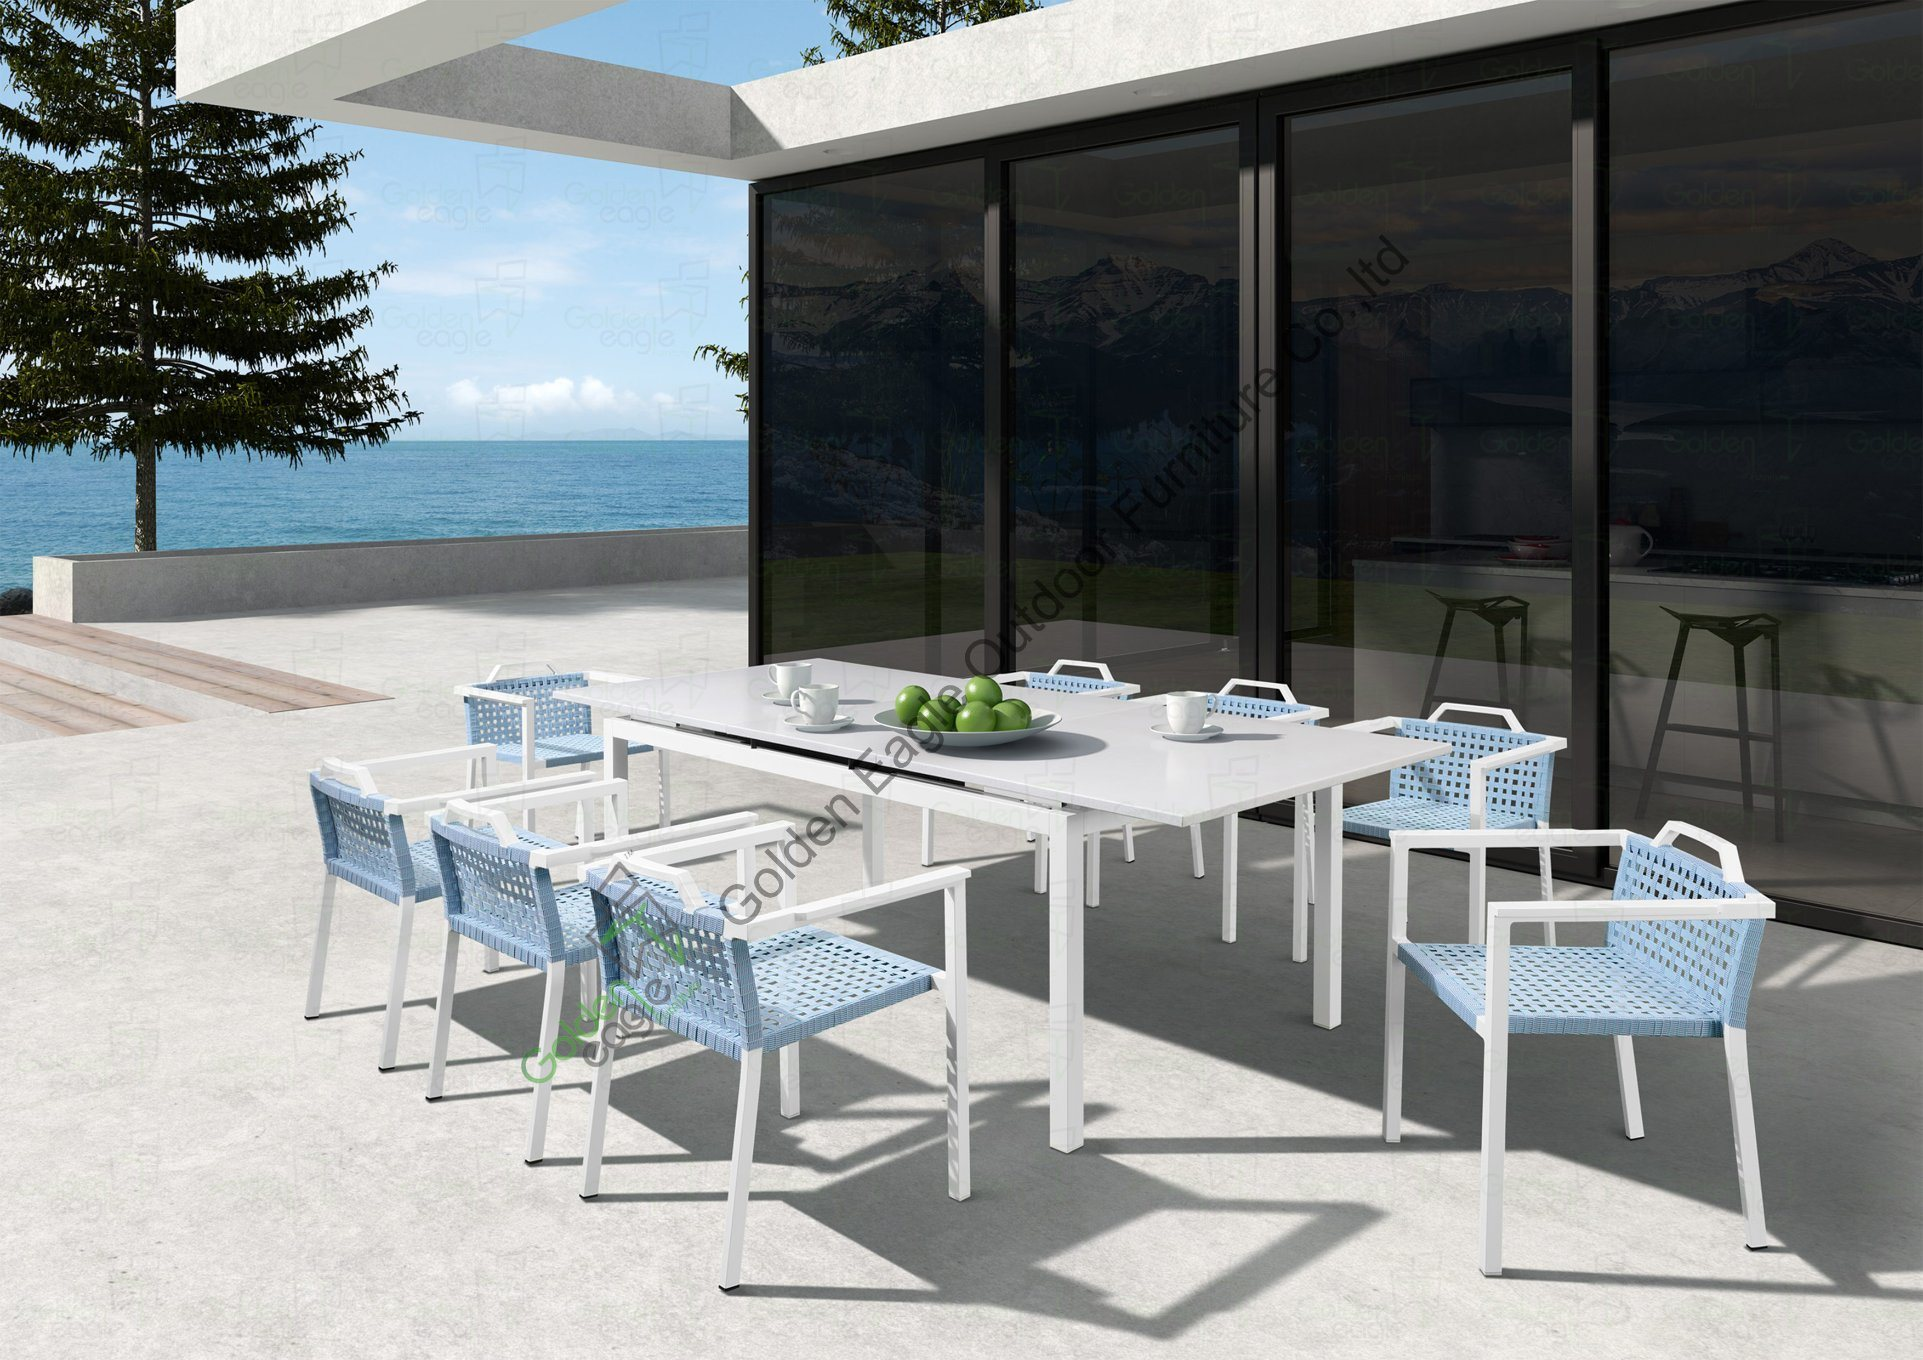 Powder Coat Metal Table and Chairs P-Fp0299